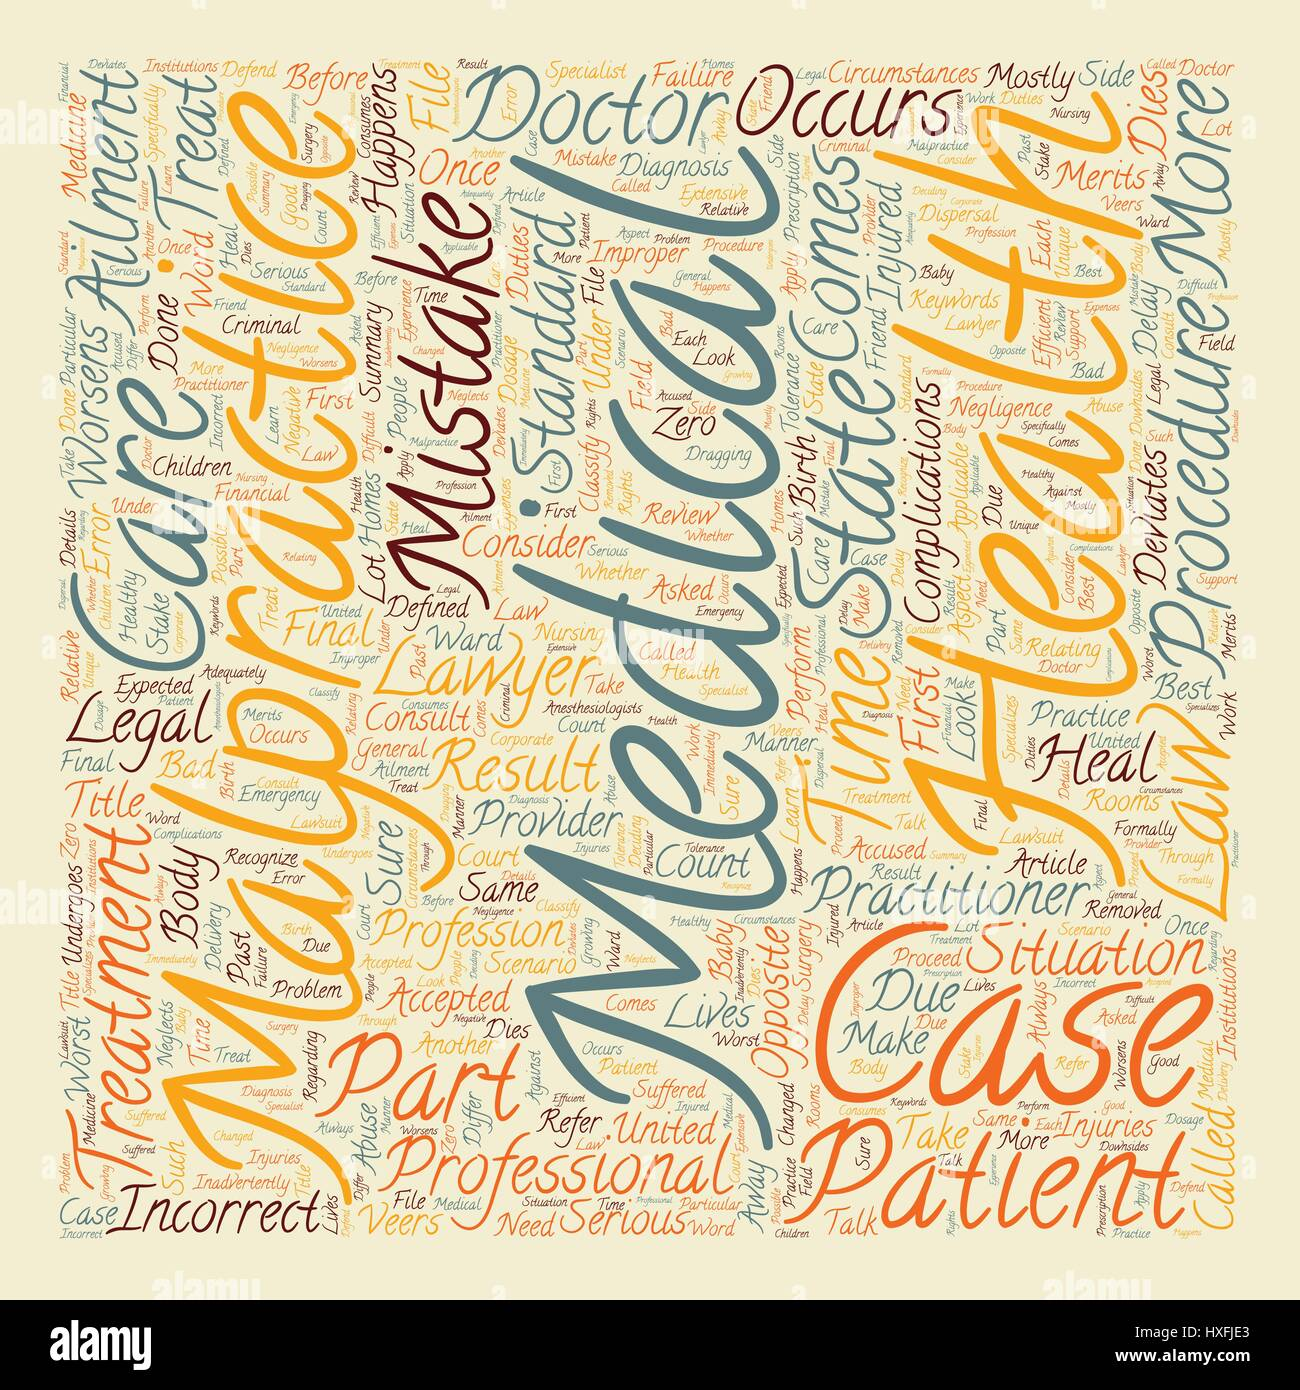 medical malpractice defined text background wordcloud concept stock